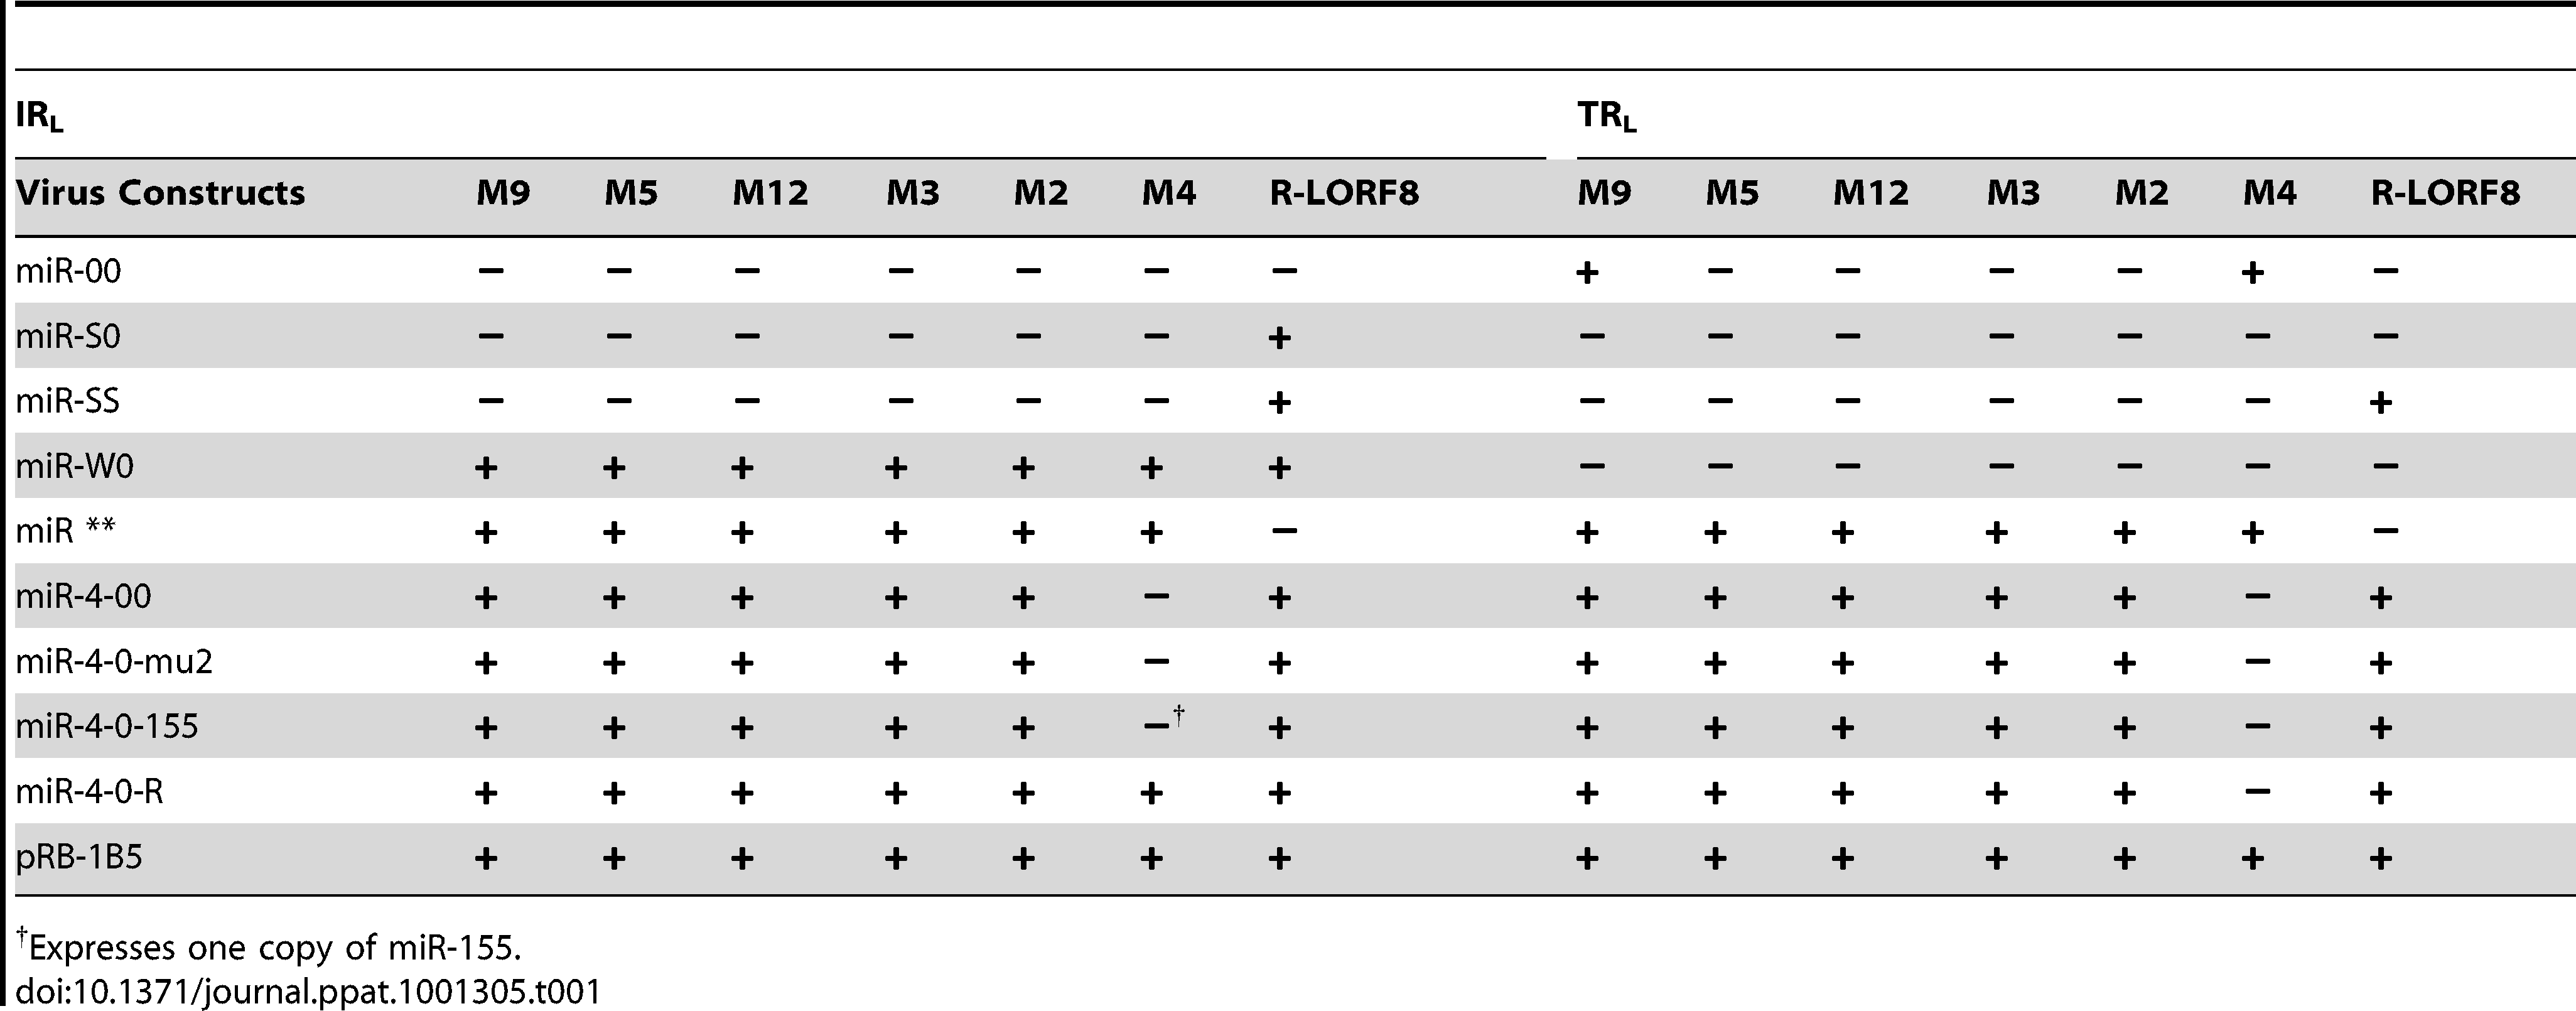 Profile of the expression of miRNAs and R-LORF8 in different constructs.